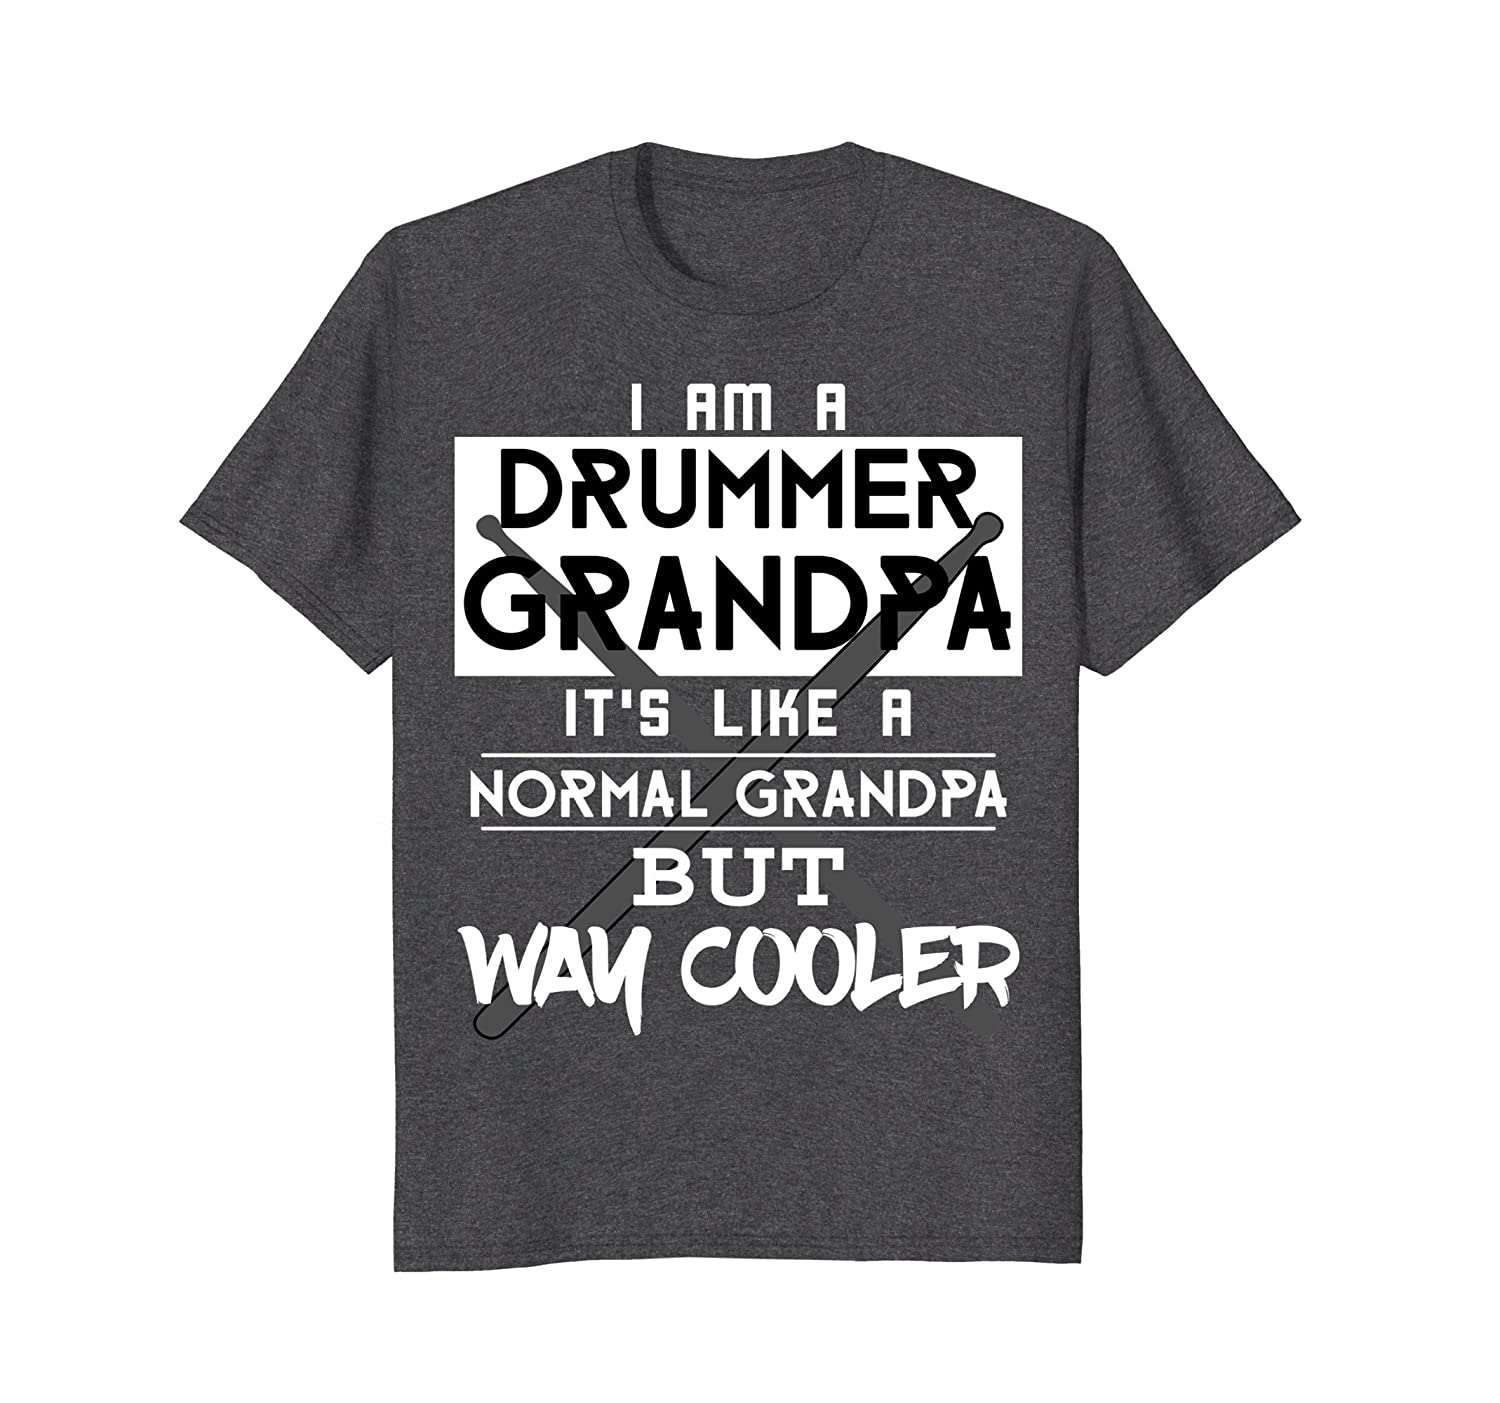 c94efdbb Funny Im A Drummer Grandpa T-shirt Fathers Day Birthday Gift-alottee gift